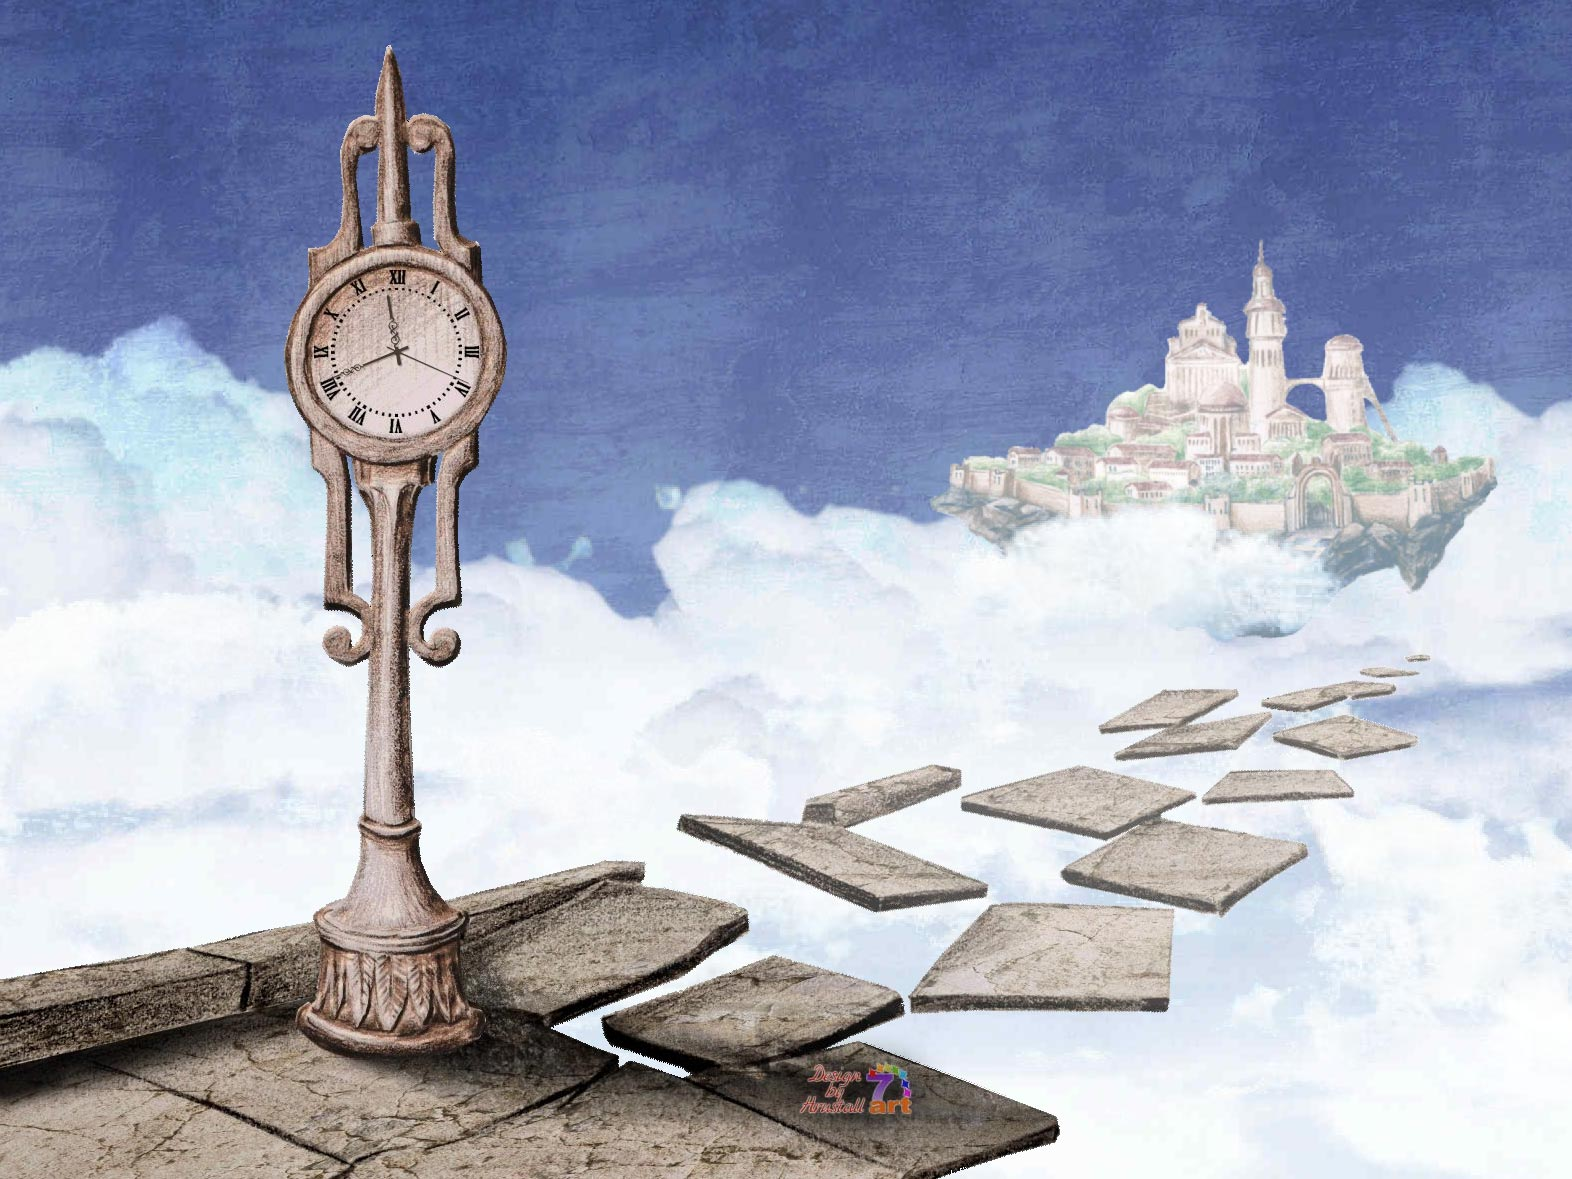 Flying Castle Clock screensaver magic staircase shows the way to